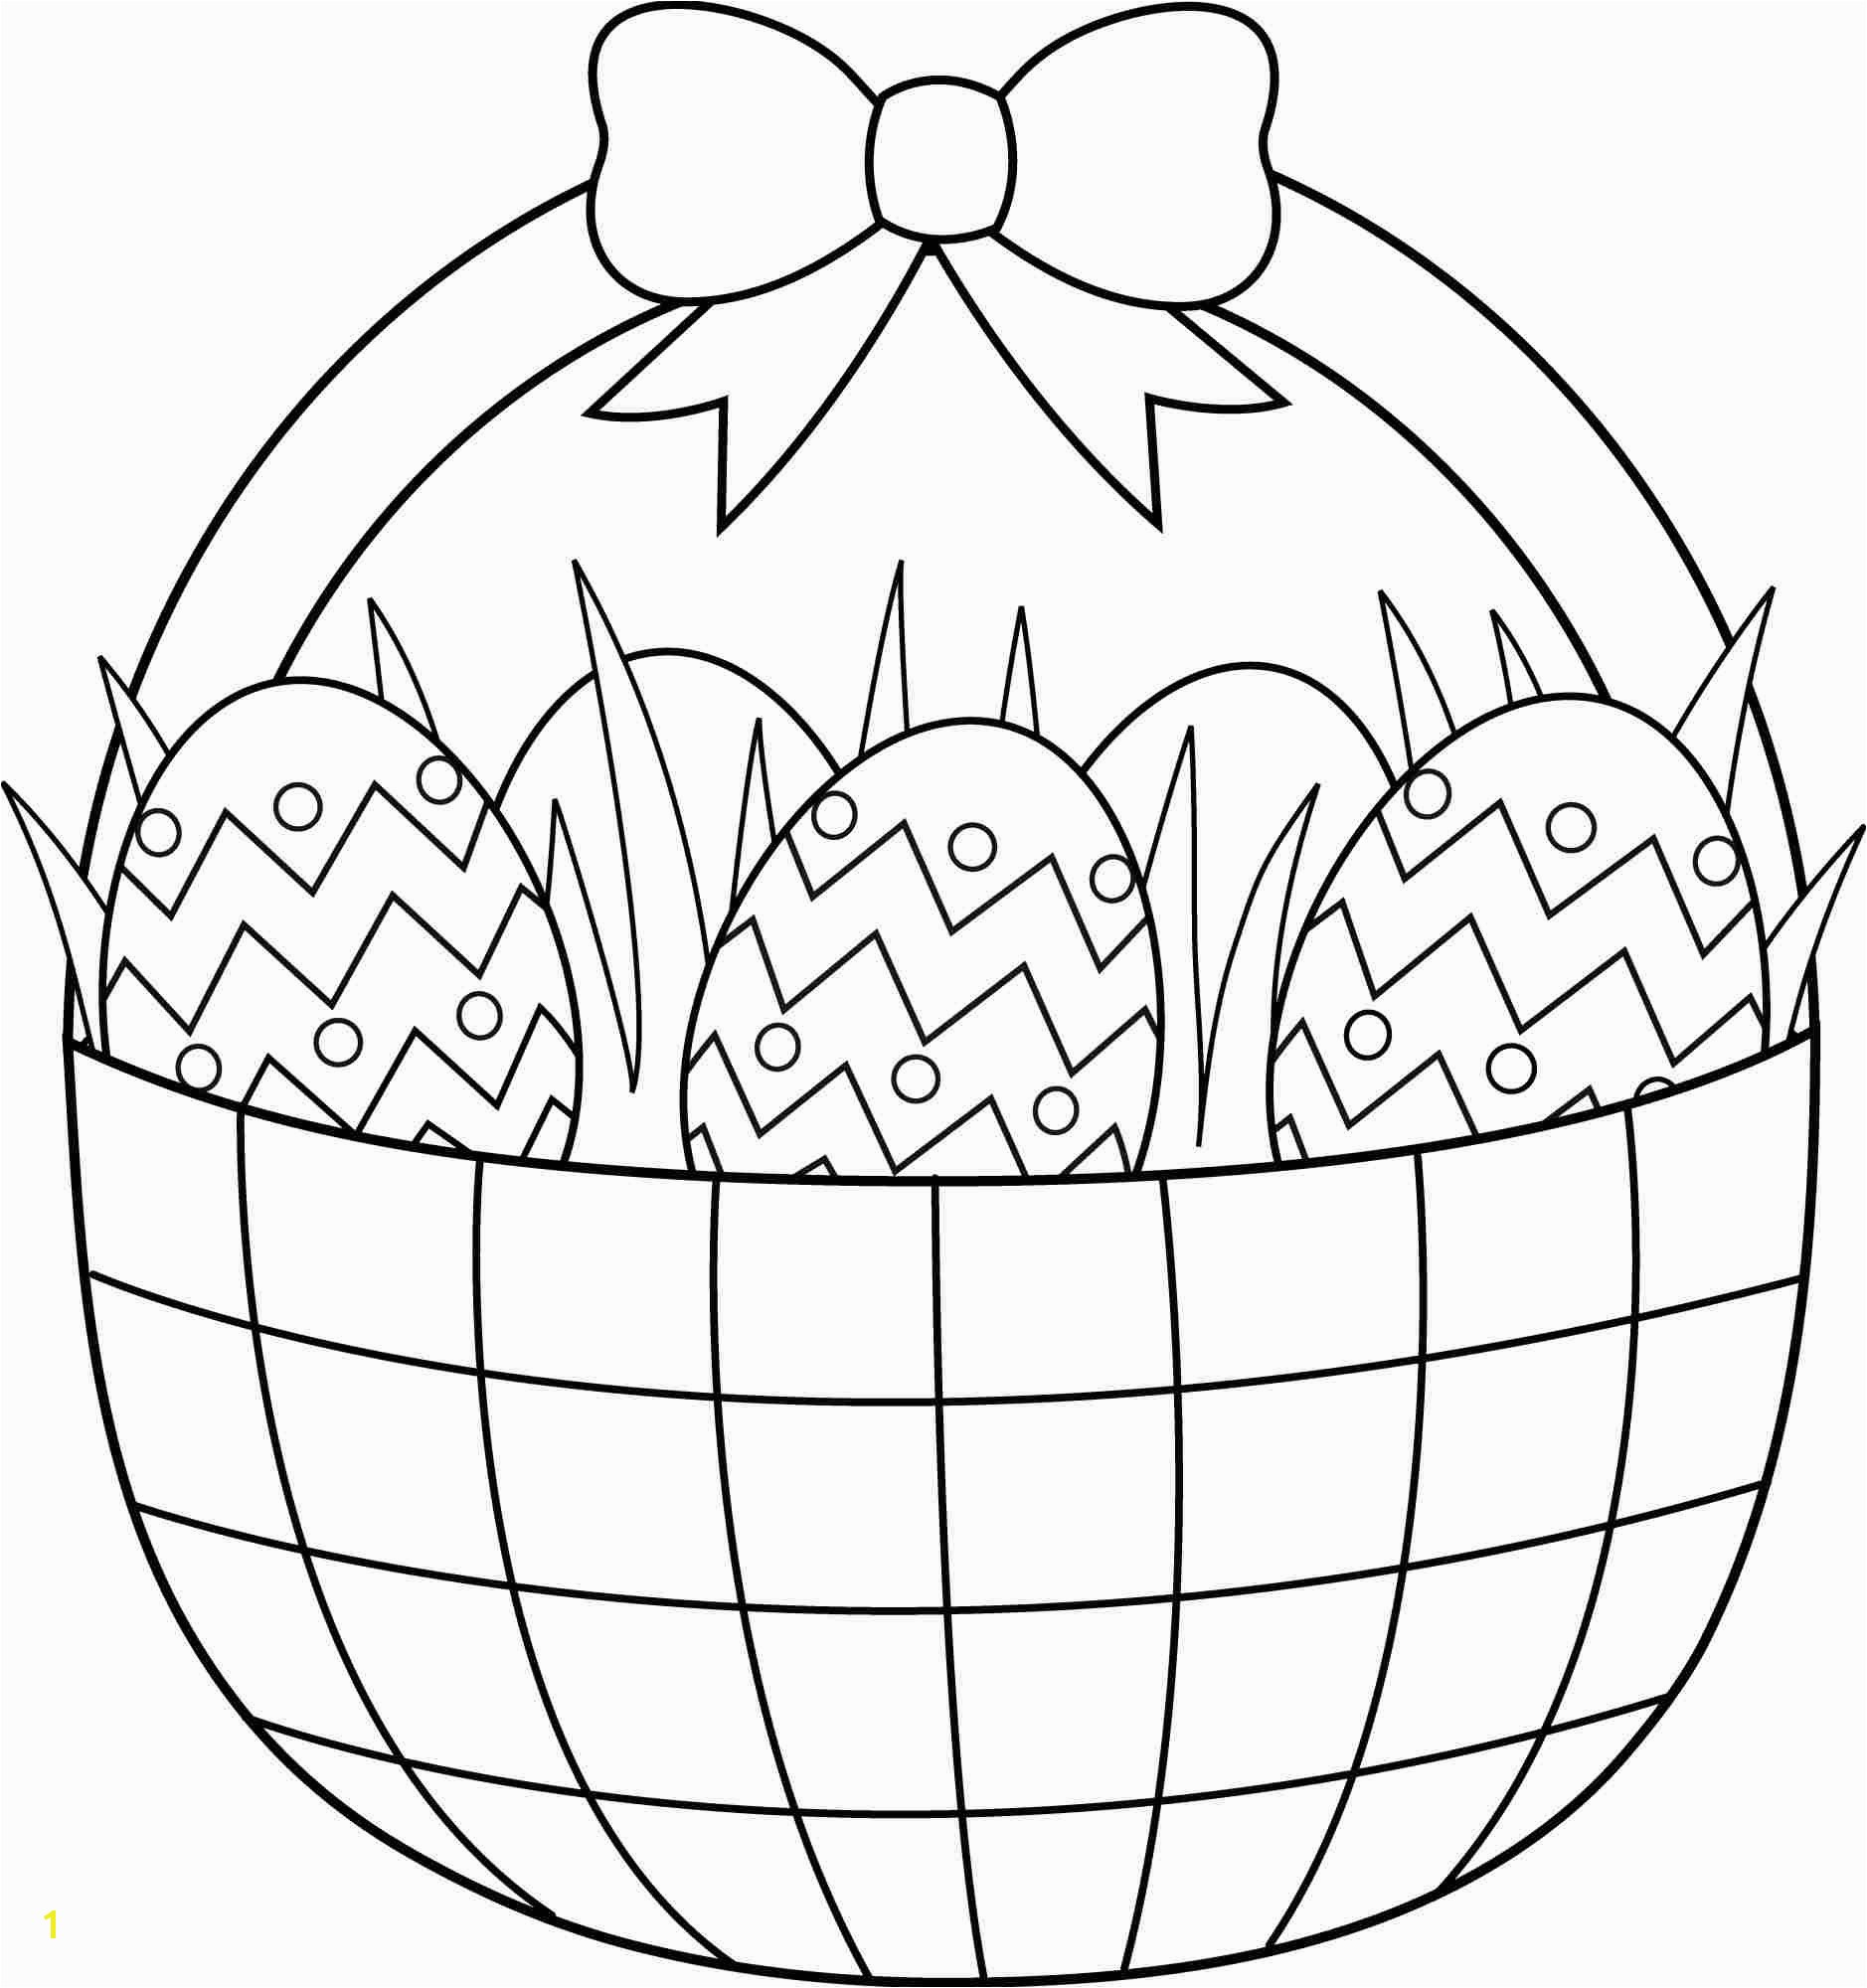 easter basket coloring sheet easter drawing for kids at drawings easter drawing for kids at drawings from easter egg coloring pages